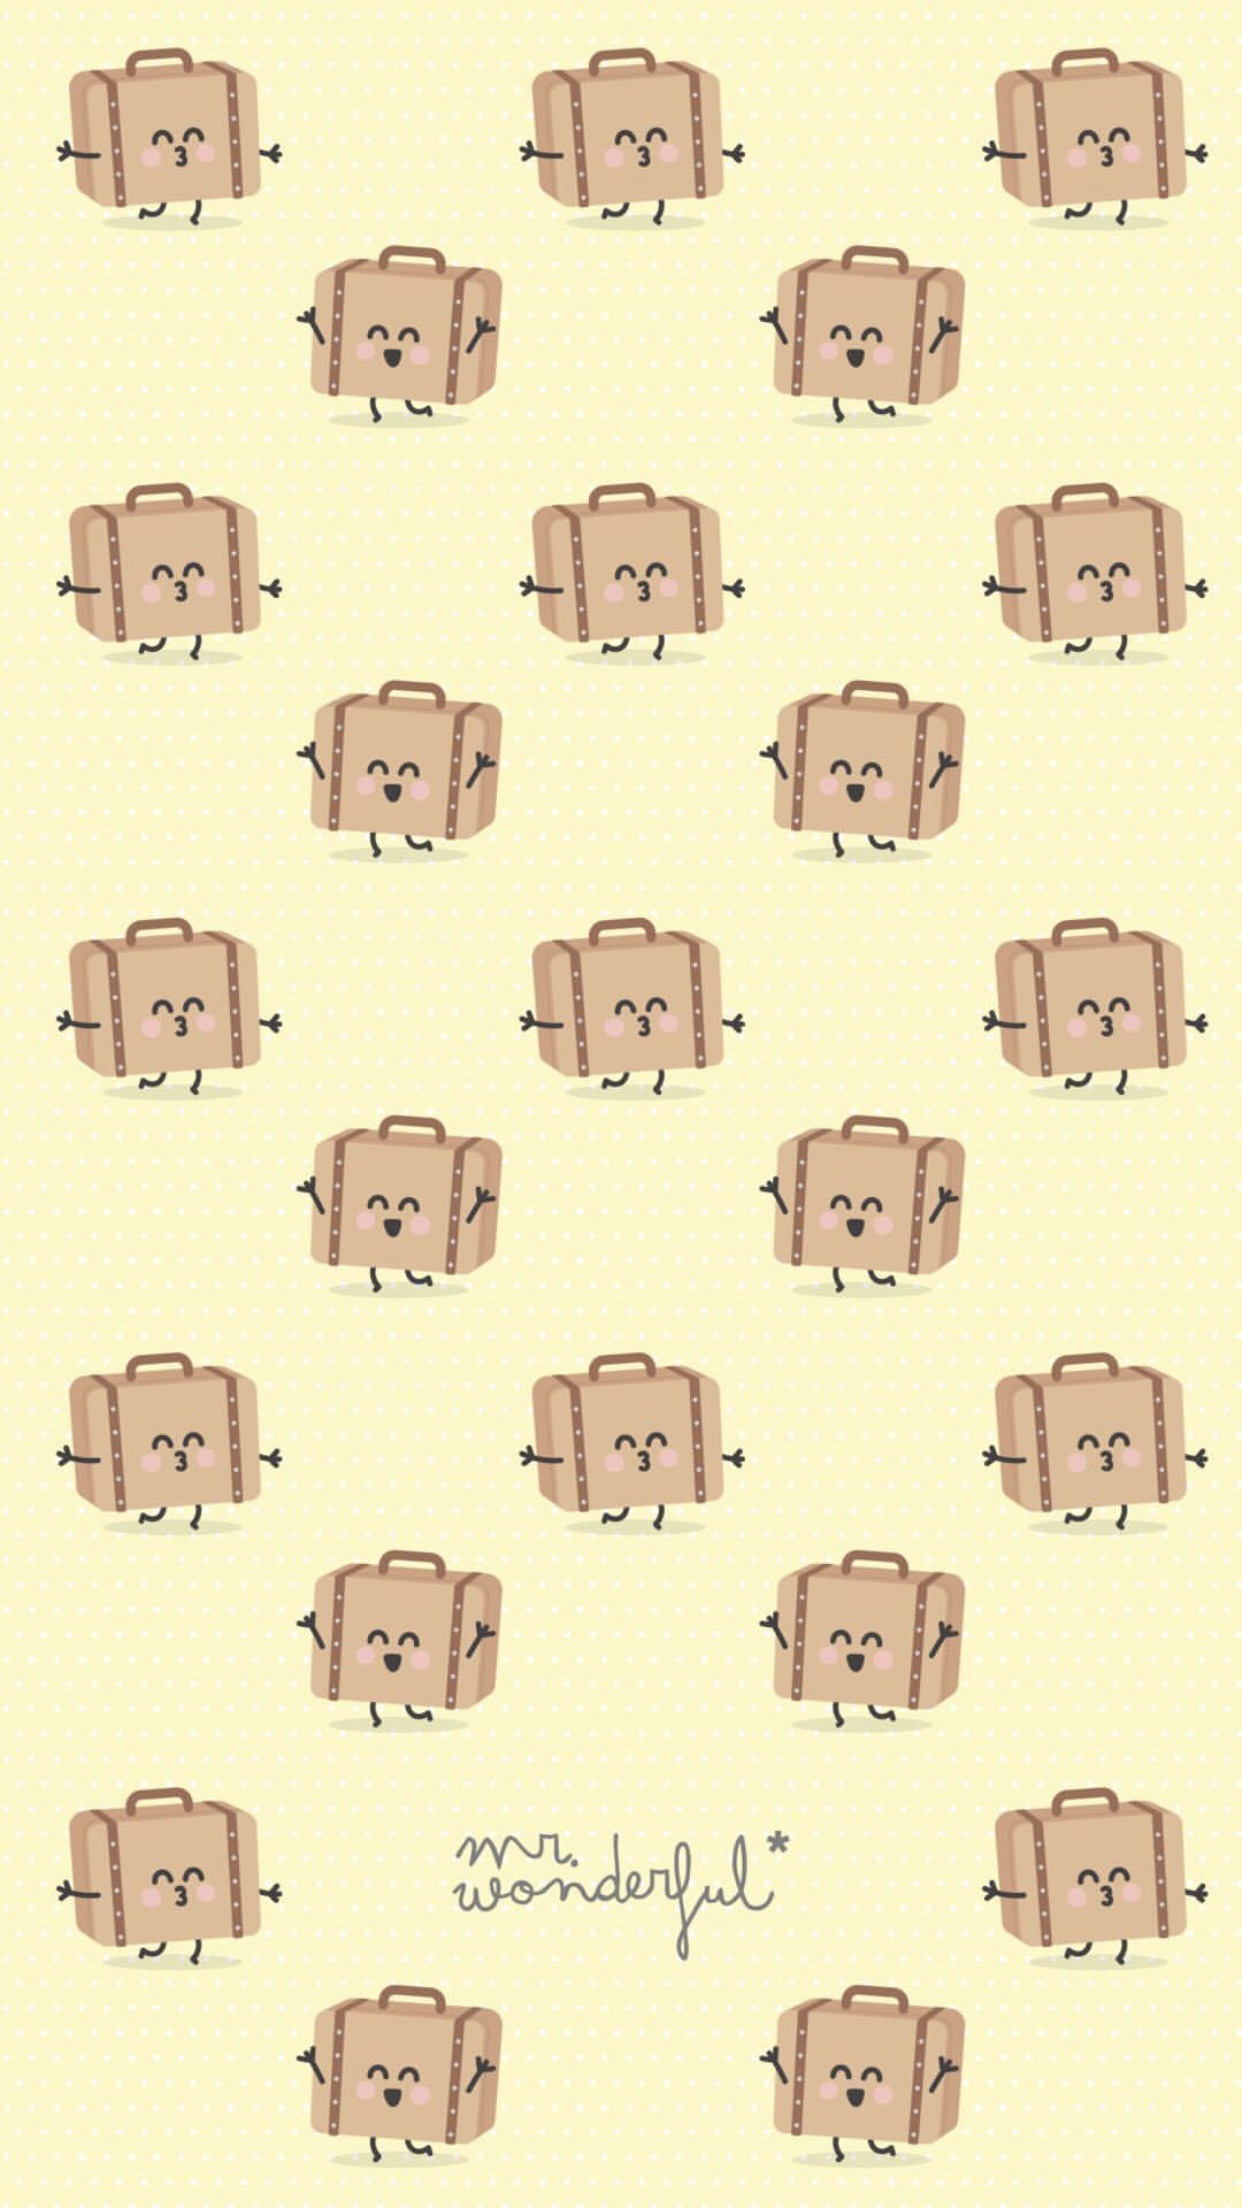 fondos de pantalla, fondo de pantalla, fondo de pantalla divertido, fondo de pantalla femenino, girly backgrounds, cool background, colorful backfround, fondo de pantalla patron, pattern, fondo de pantalla de maletas, suitcase background.